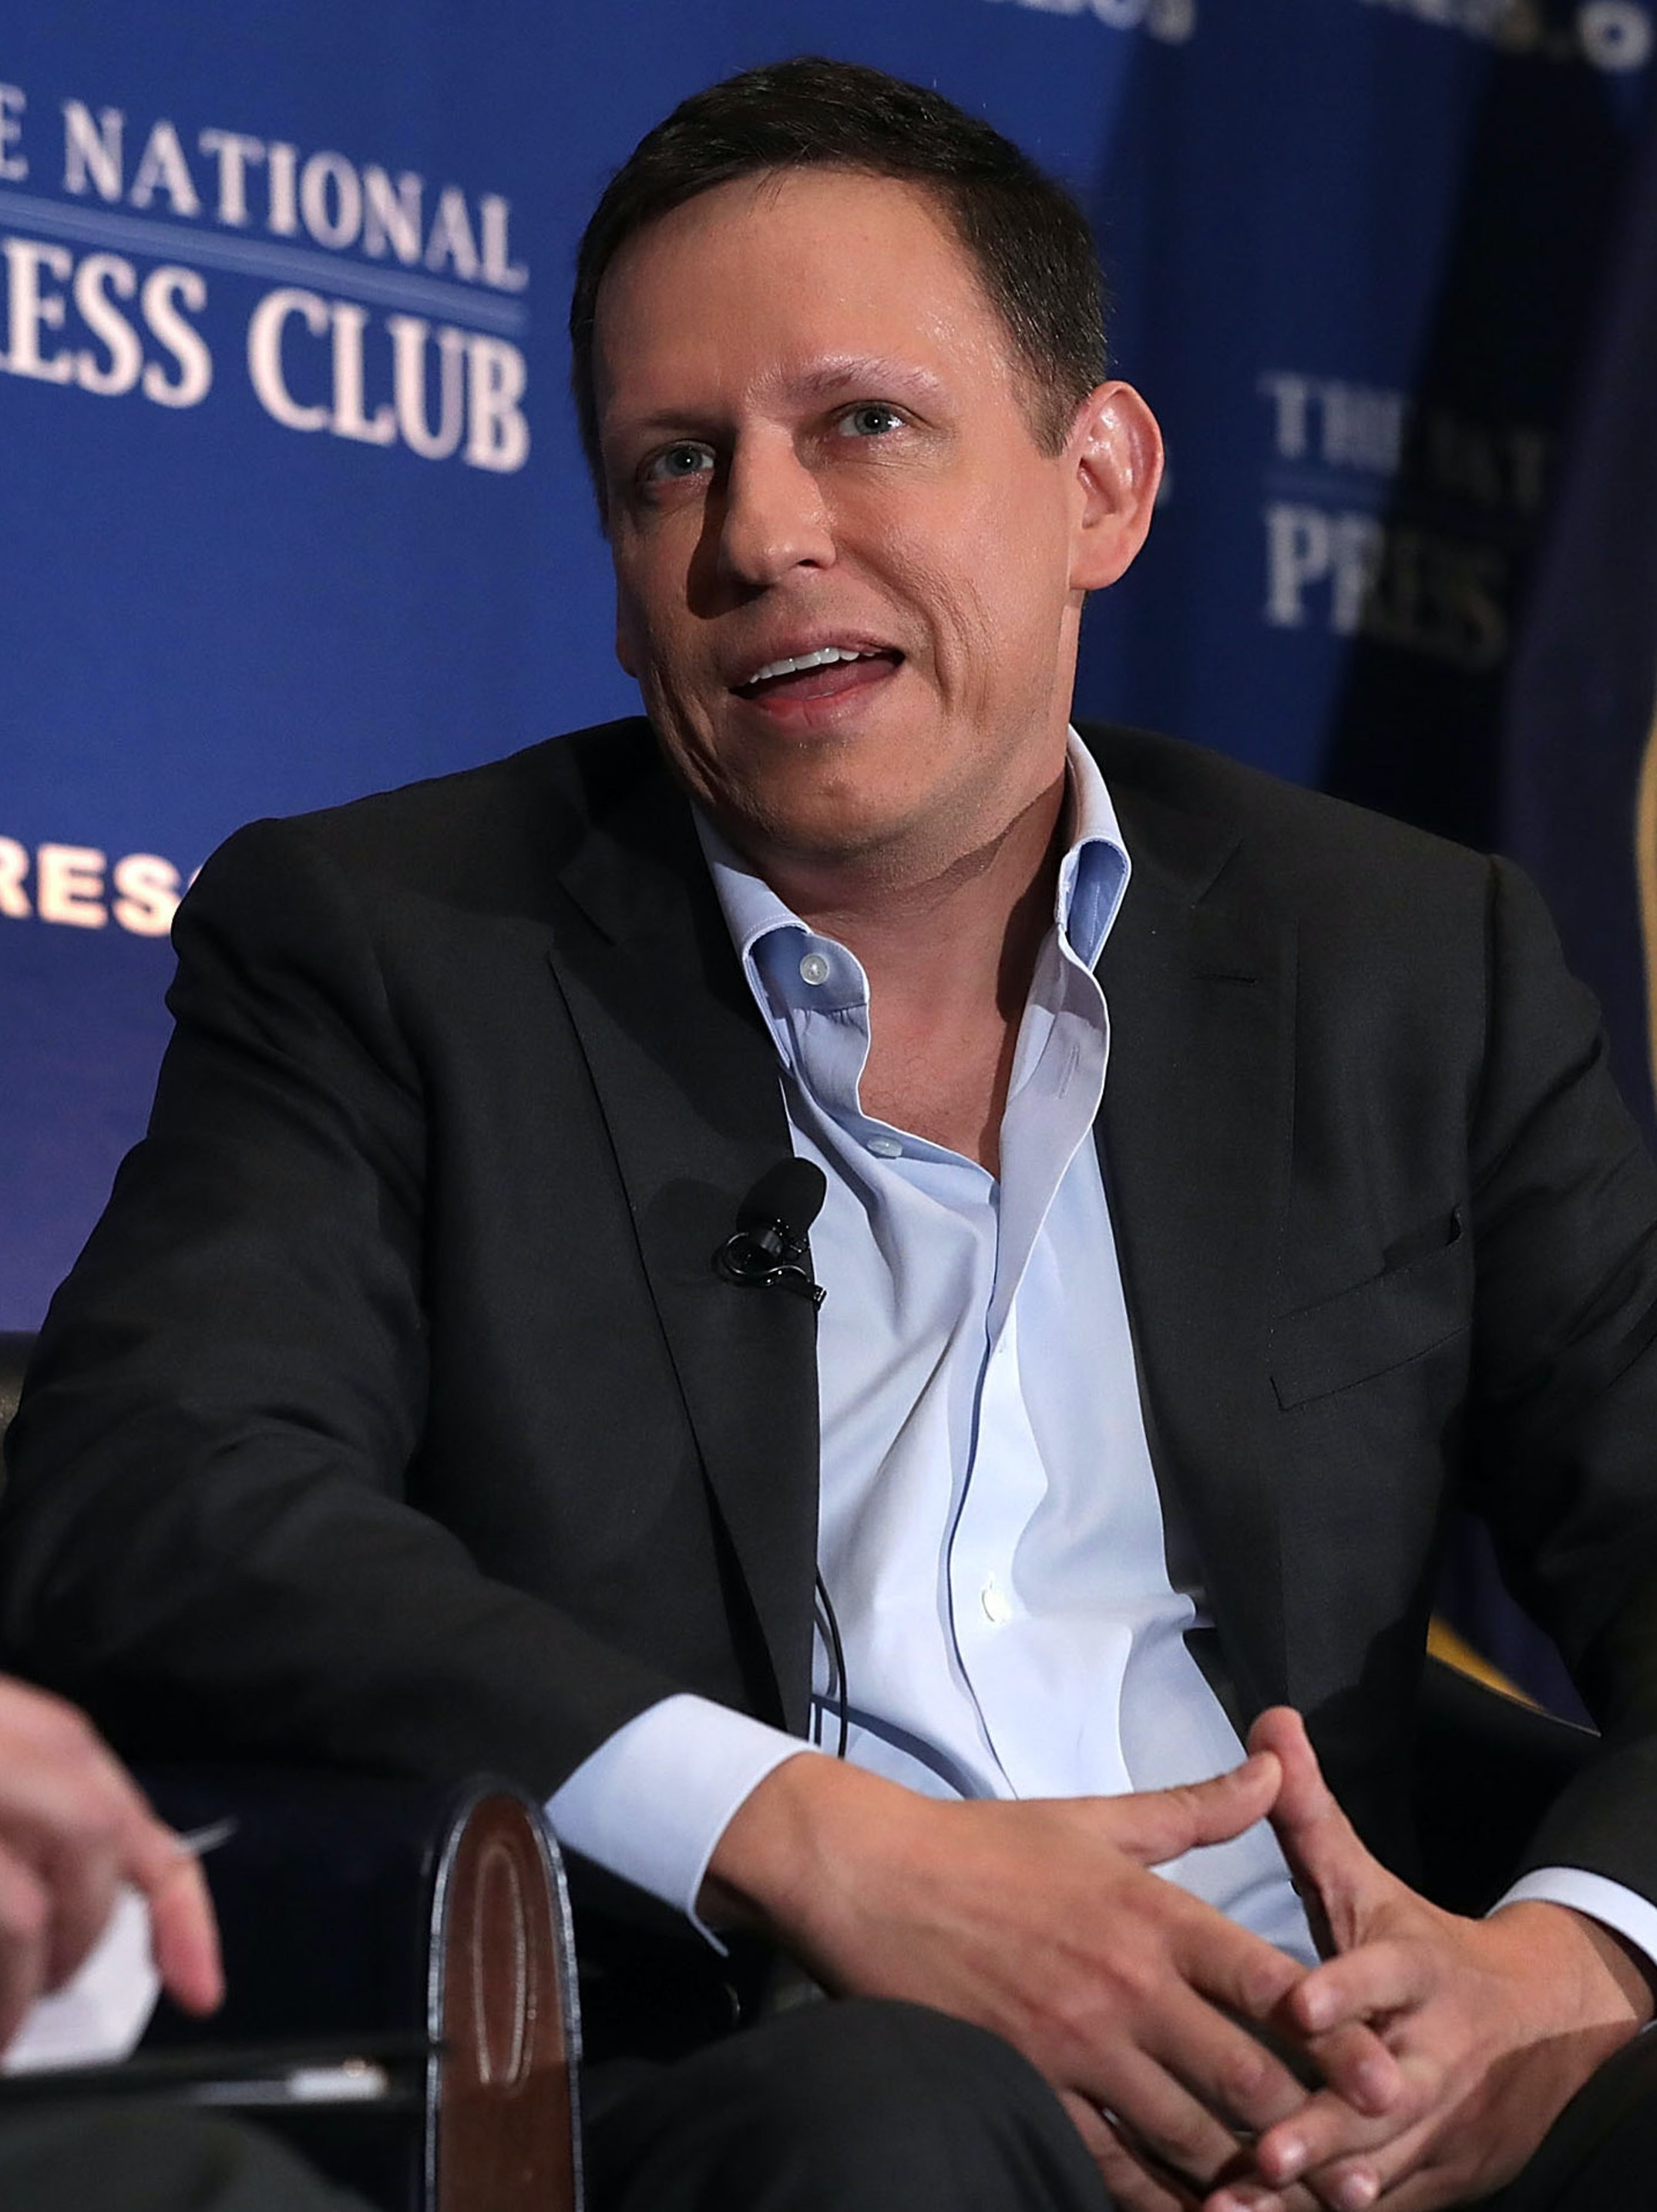 WASHINGTON, DC - OCTOBER 31:  Entrepreneur Peter Thiel participates in a discussion at the National Press Club on October 31, 2016 in Washington, DC. Thiel discussed his support for Republican presidential nominee Donald Trump.  (Photo by Alex Wong/Getty Images)